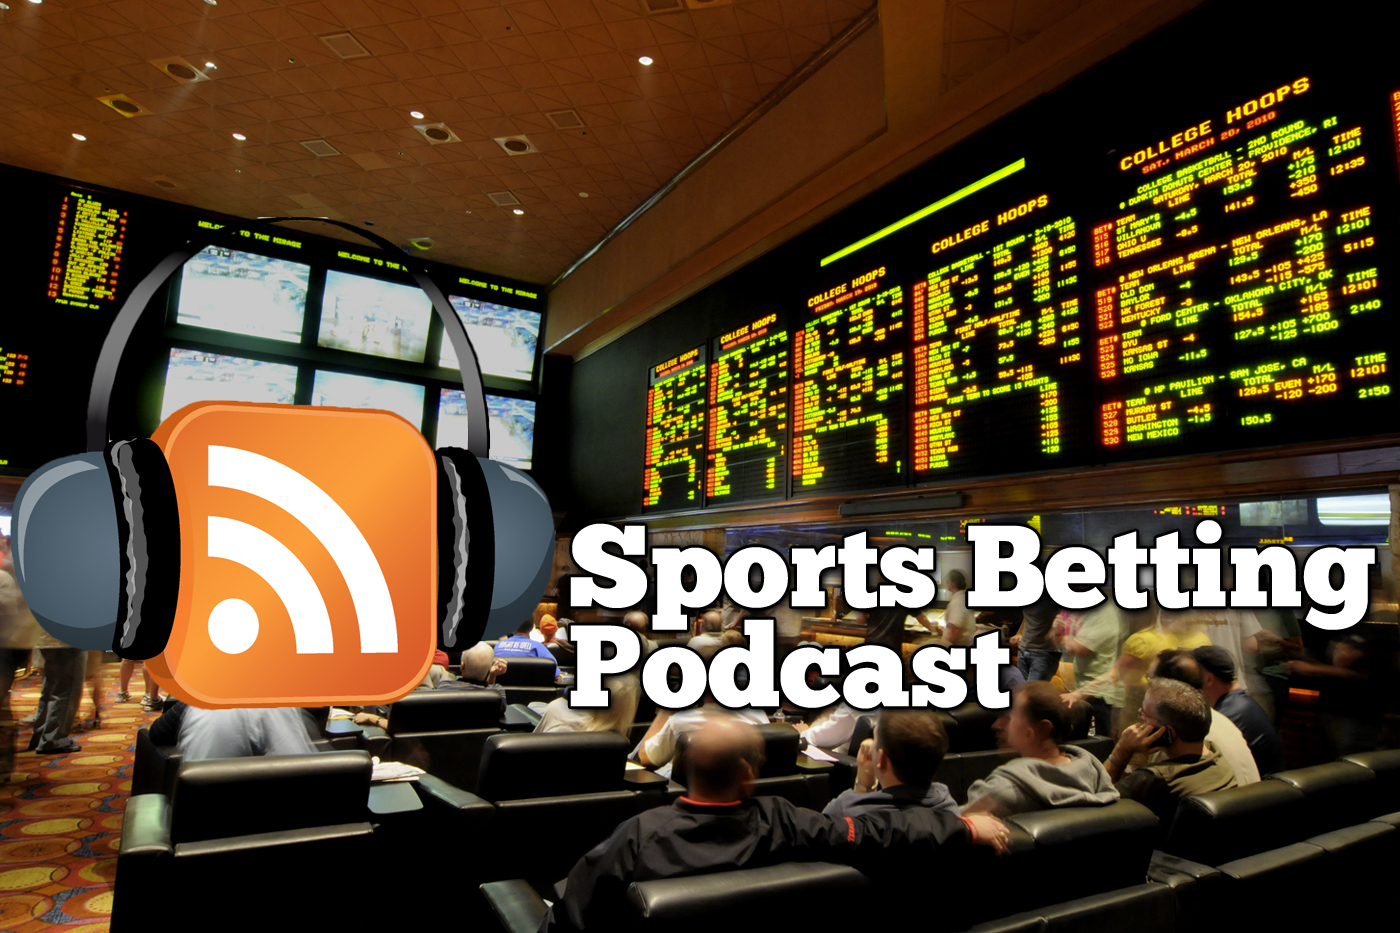 Sports Betting Podcast